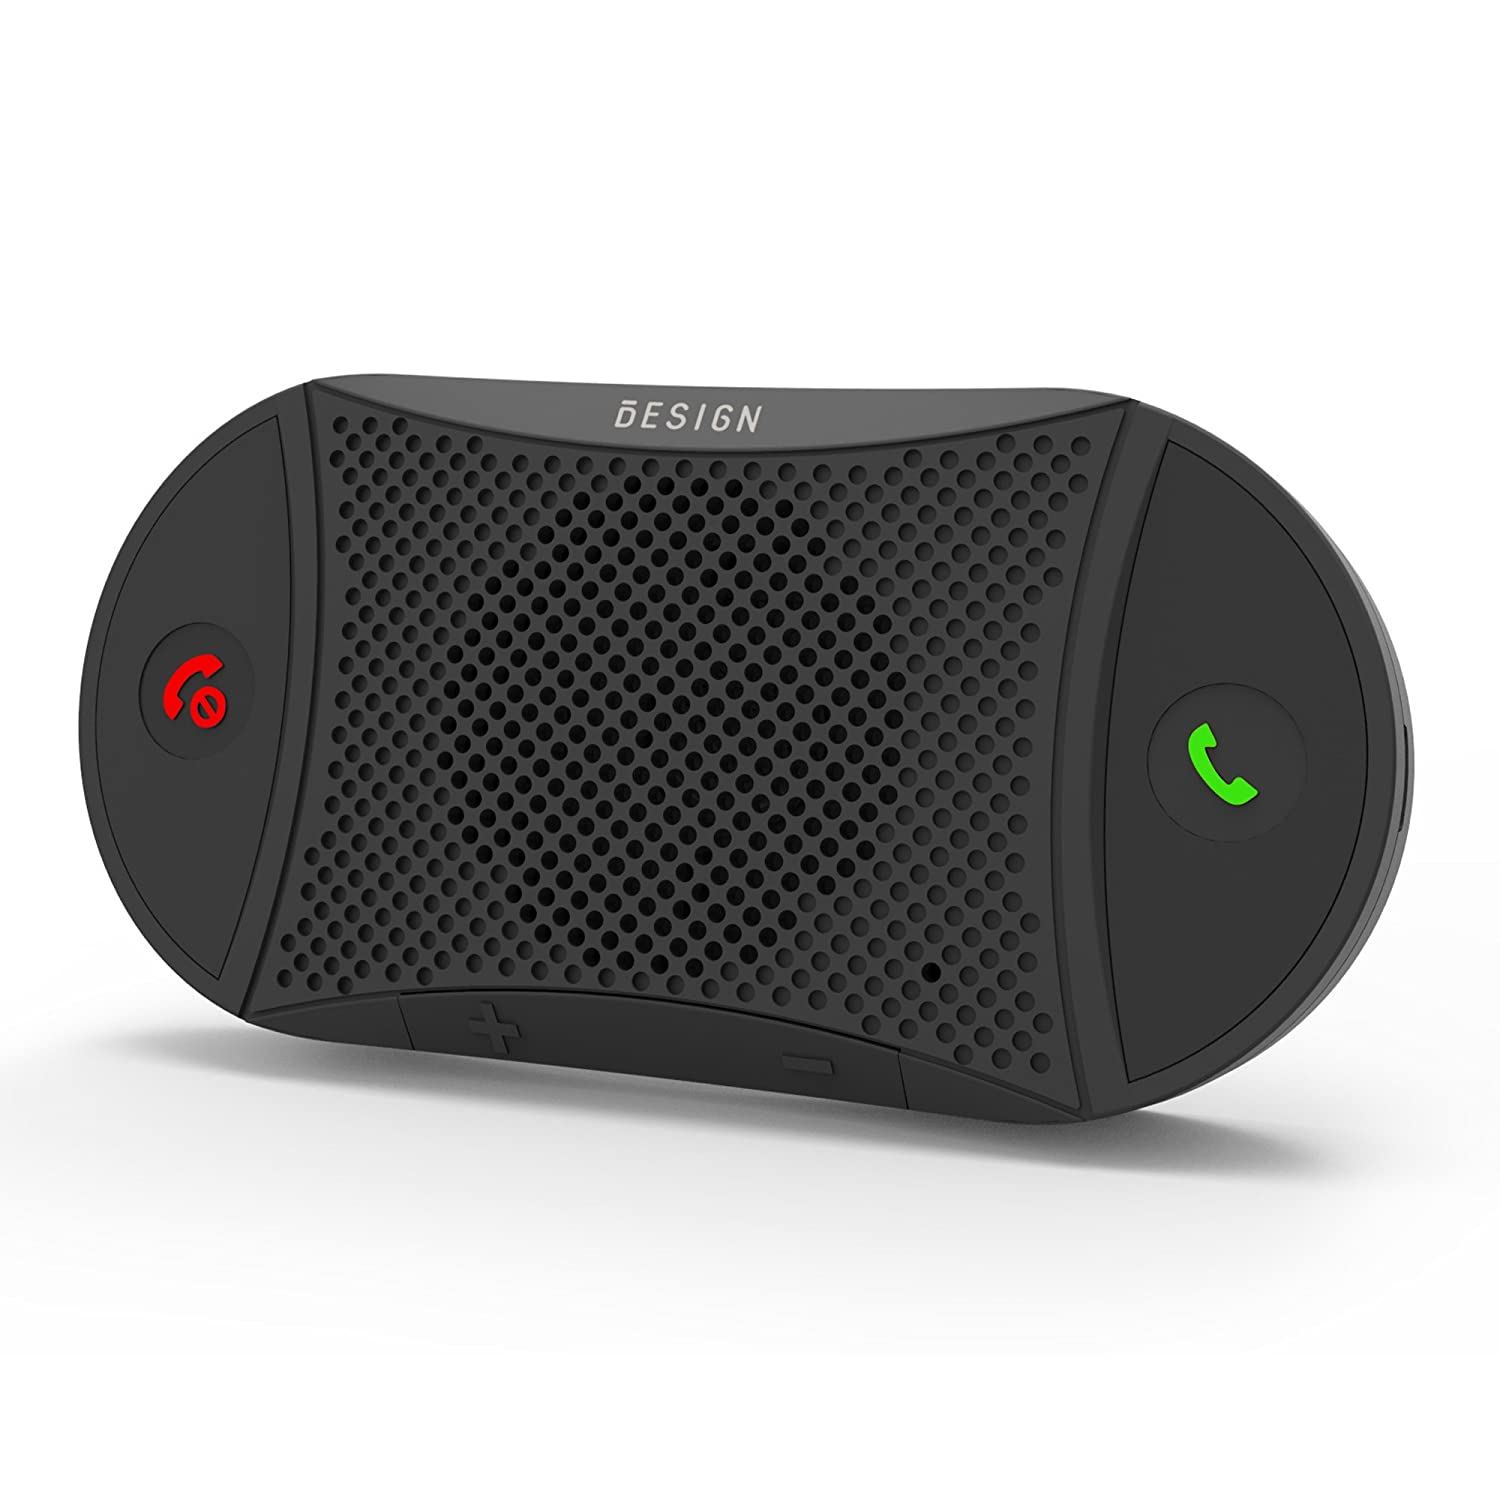 Besign BK02 Bluetooth 4.1 in-car Speakerphone, Wireless Car Kit for Hands-Free Talking & Music Streaming, Connect Two Phones, 2 Years Warranty